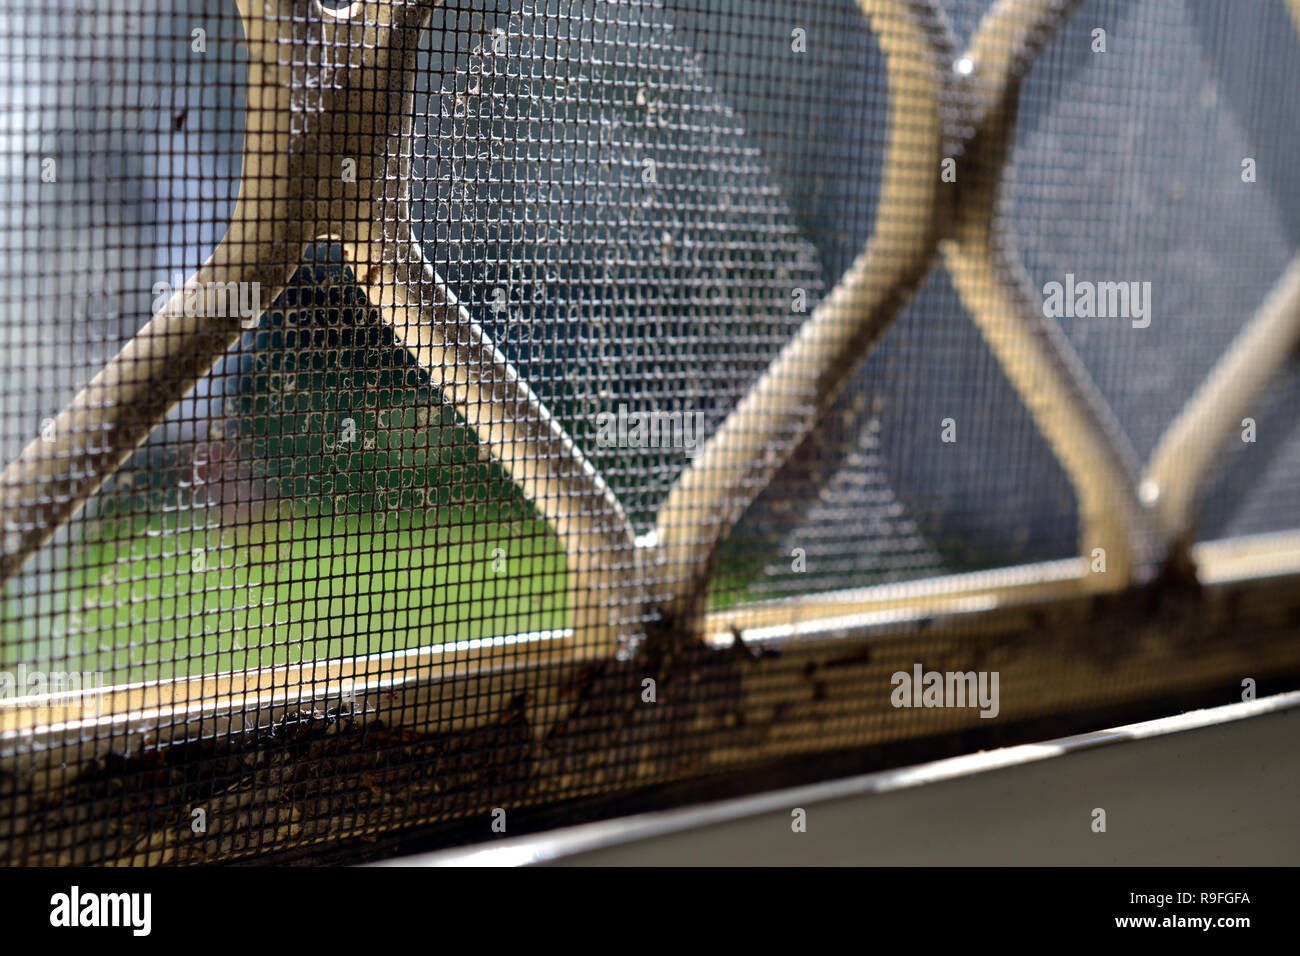 Dust, Dirt and Dead Bugs in Window Track, Windowsill and Fly Screen - Stock Image